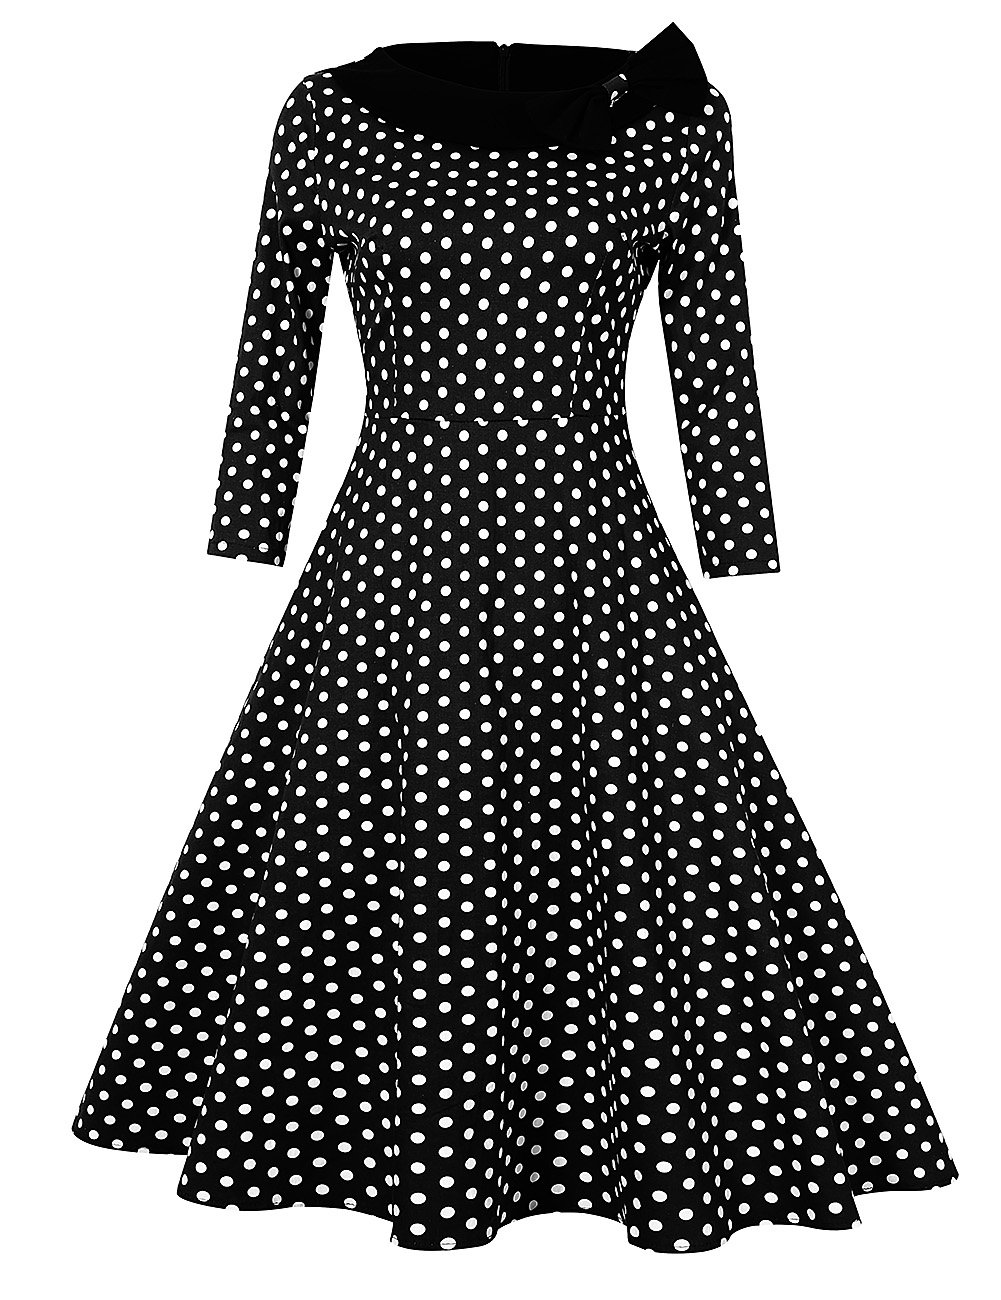 GlorySunshine Women's Vintage Swing Polka Dot Dress 0